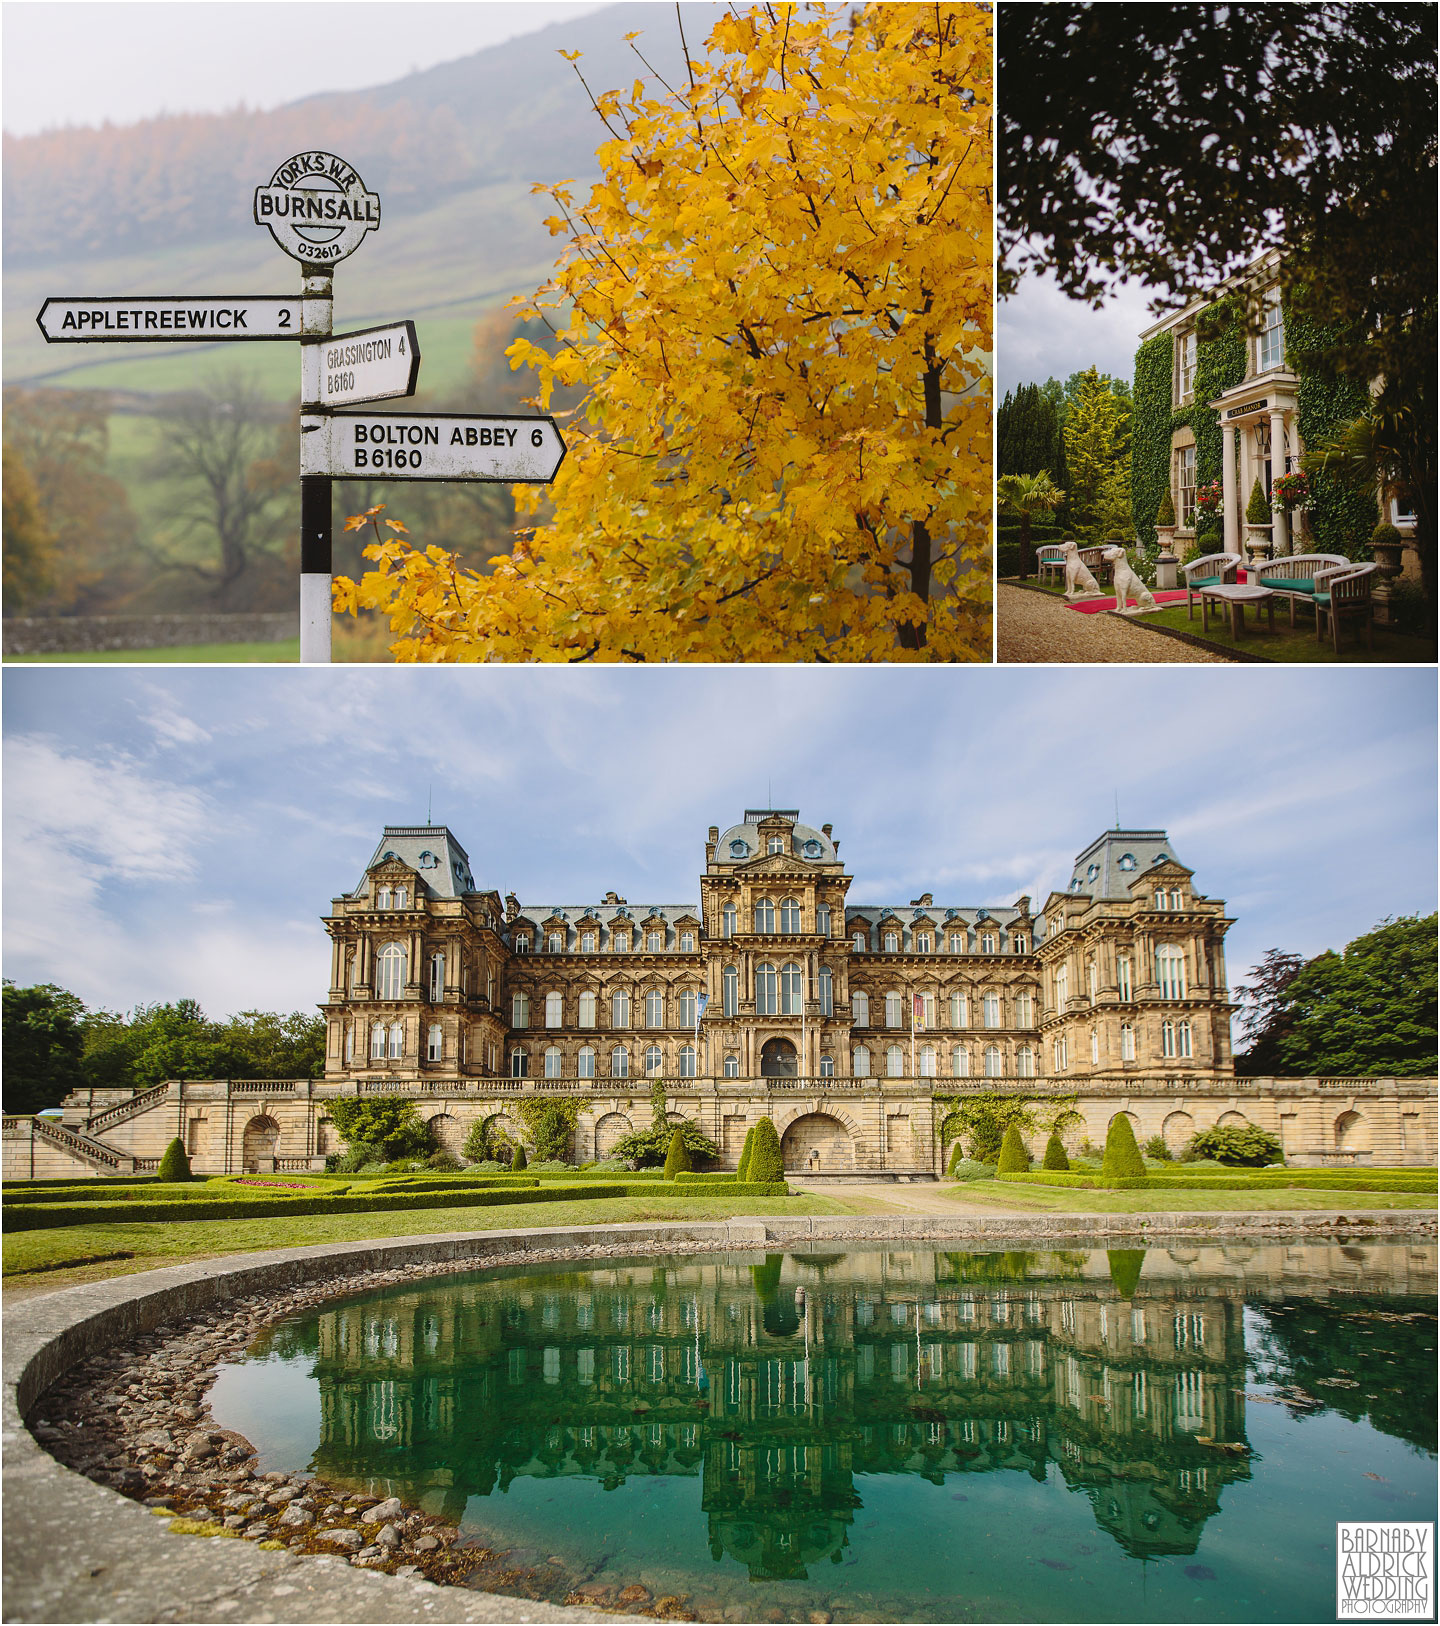 The stunning Bowes Museum makes for an alternative wedding venue as an art gallery in a french style chateaux in North Yorkshire